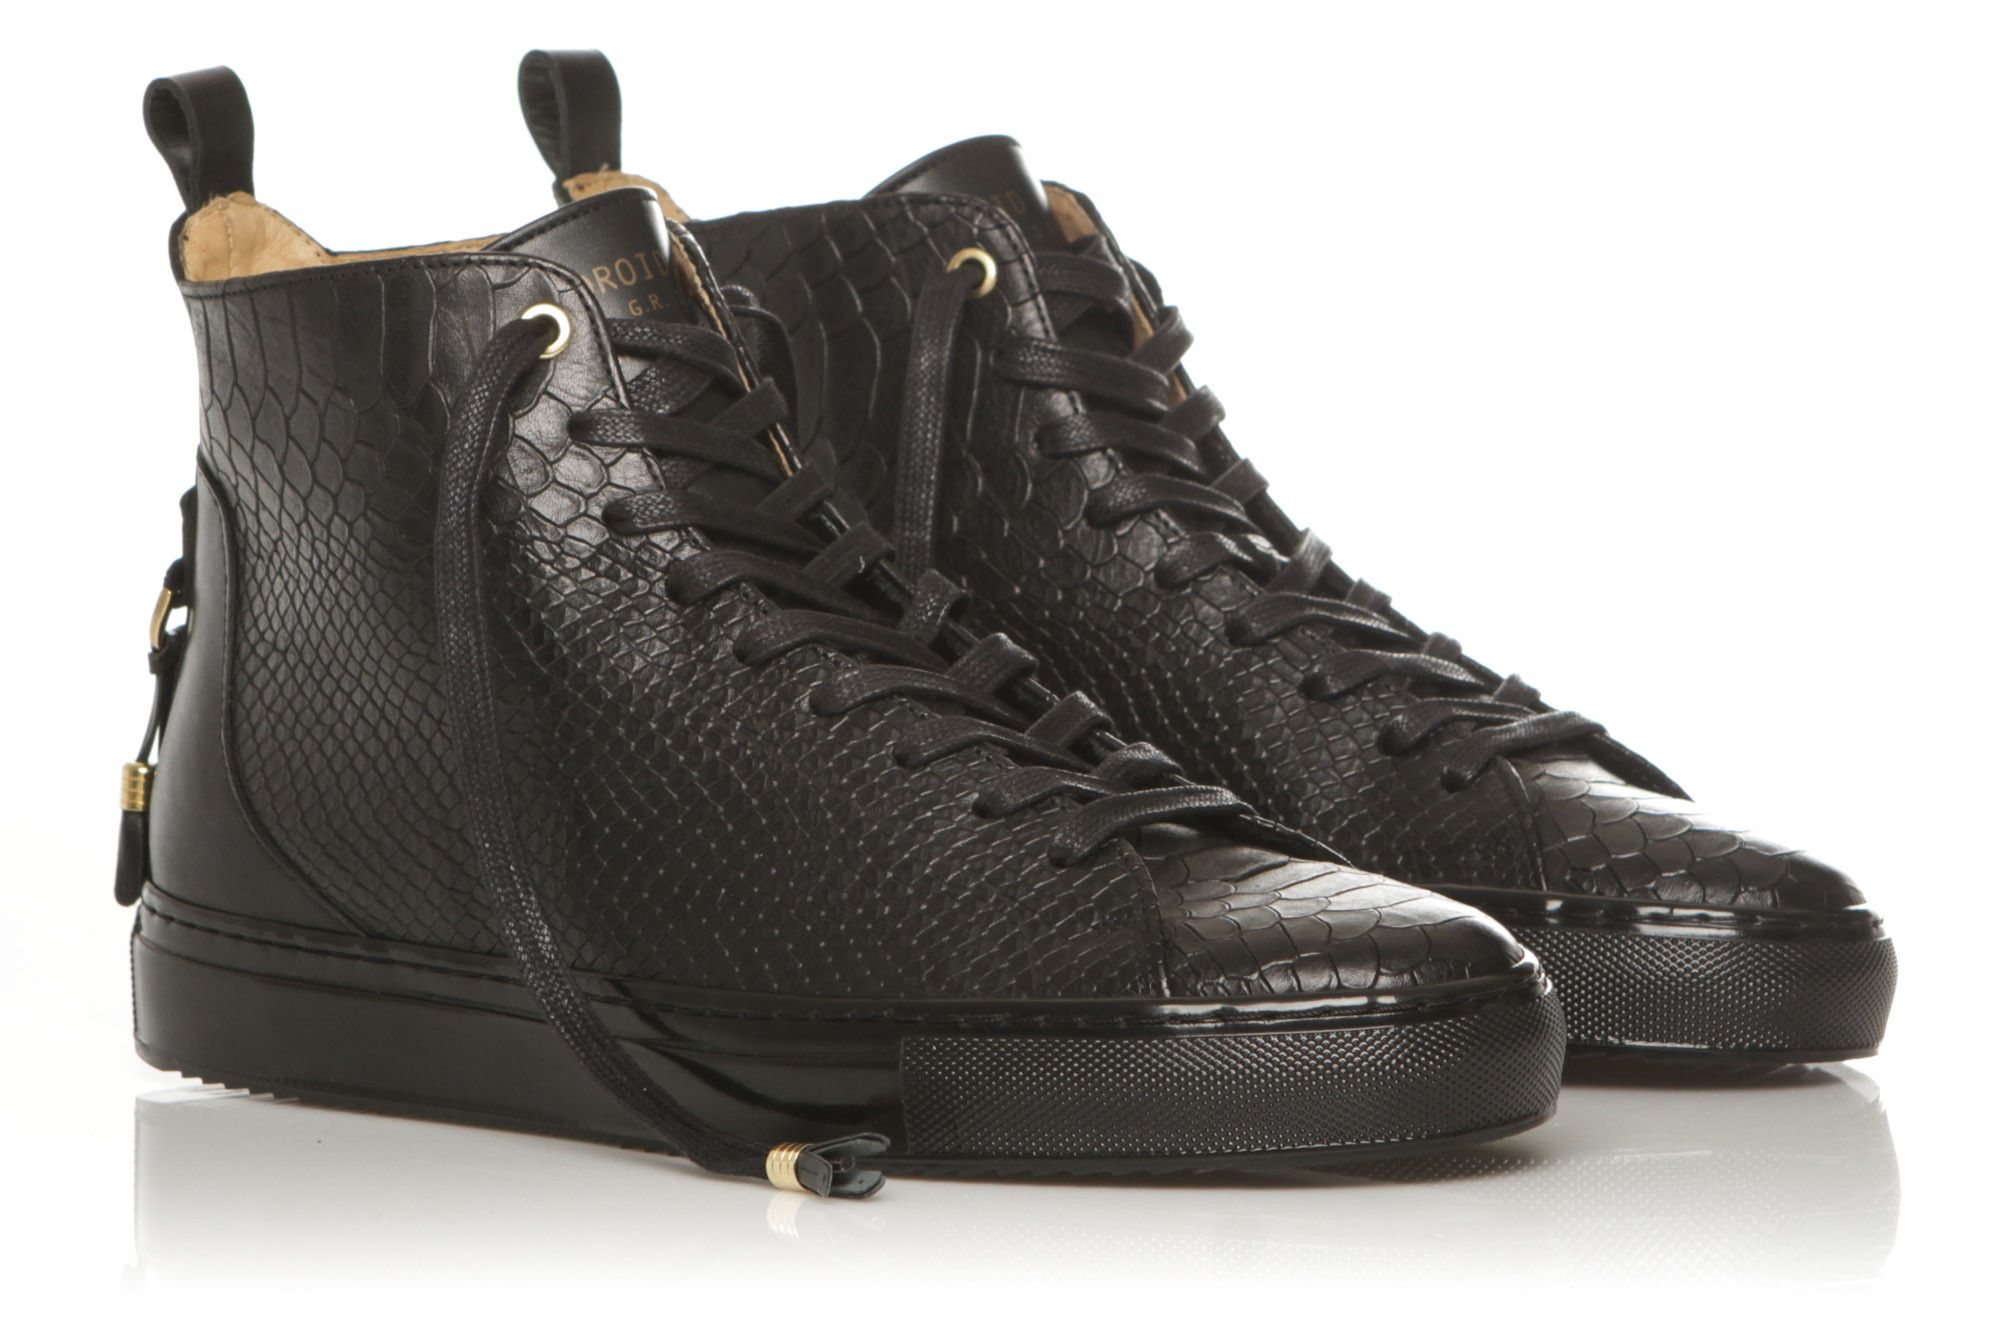 ANDROID HOMME ALFA HIGH | Dress shoes men, Shoe boots, Dream shoes